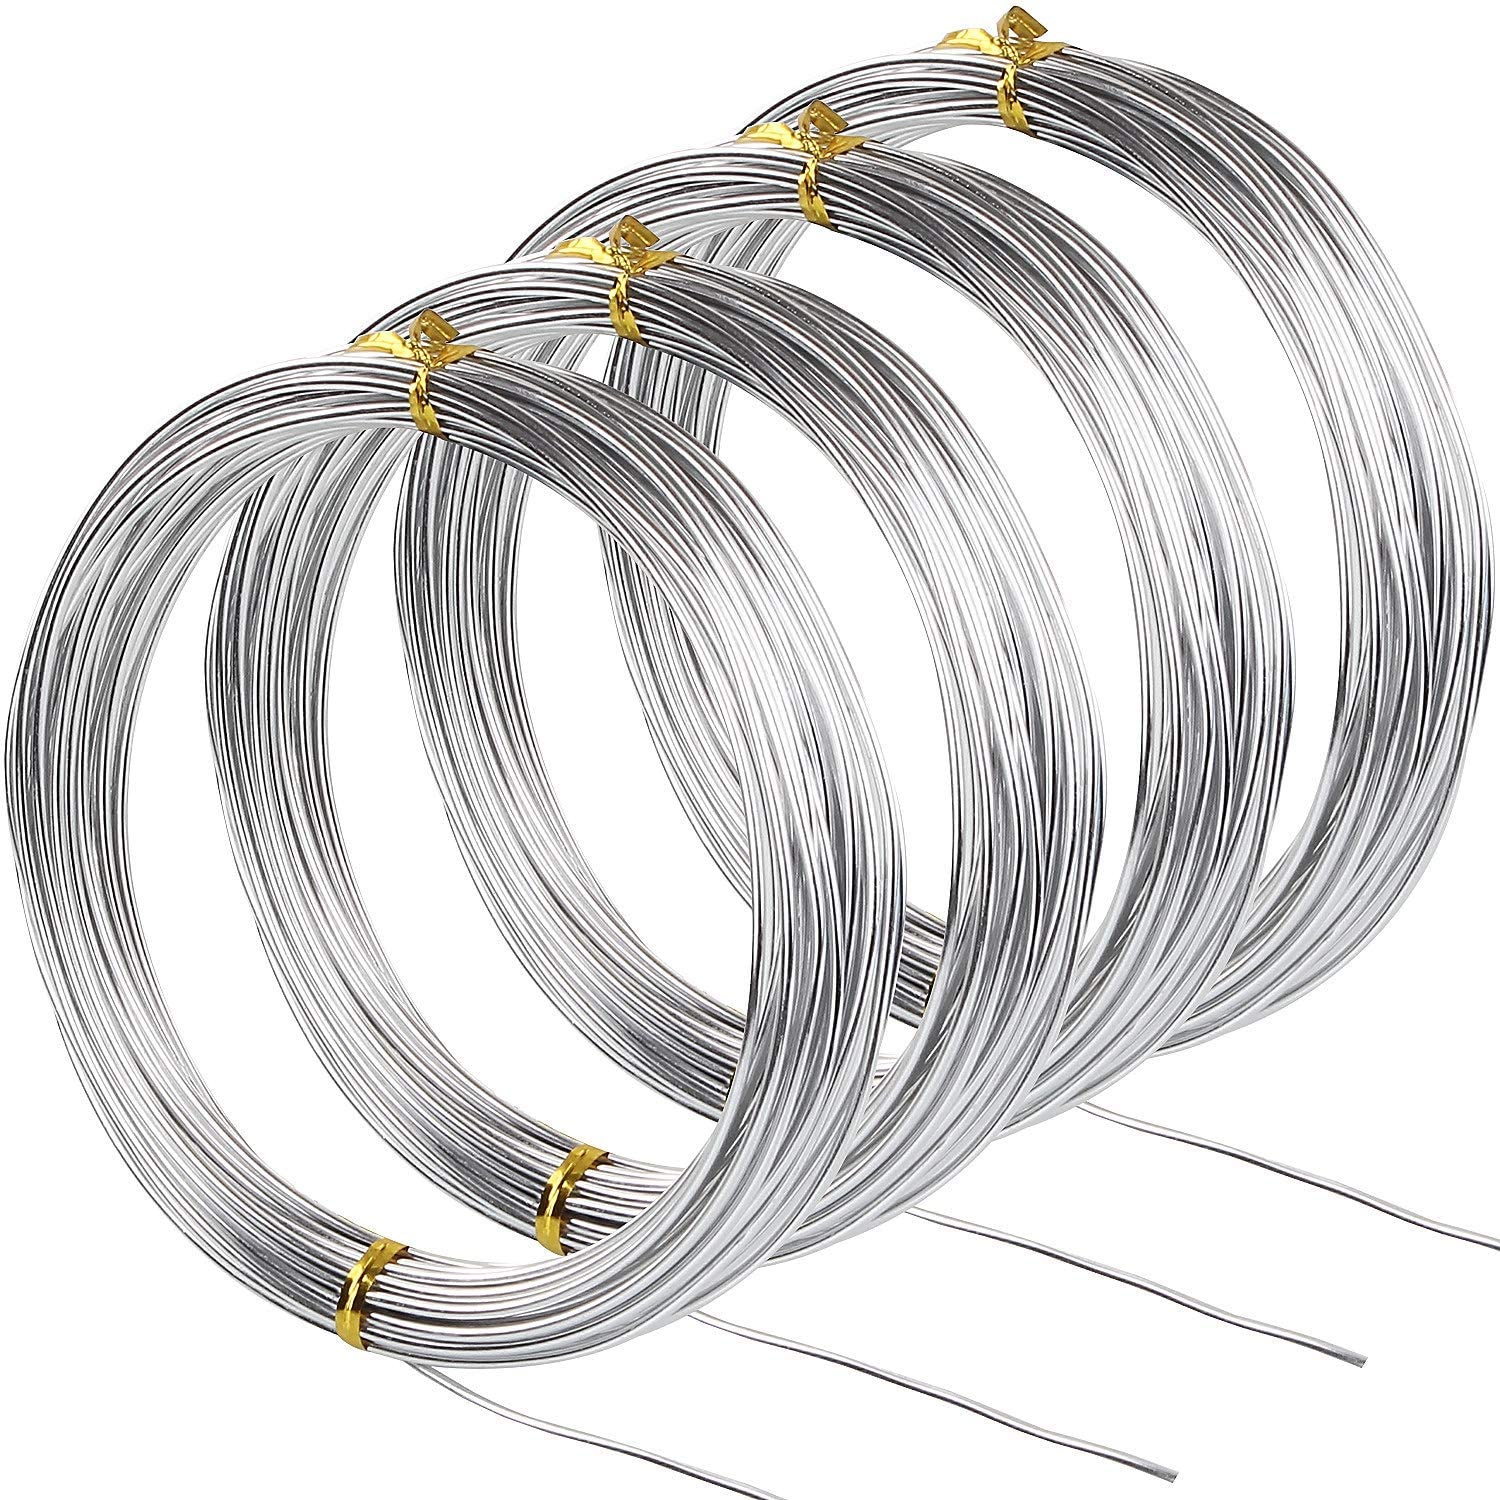 AConnet 32.8Ft Silver Aluminum Wire 16 Gauge Thickness Bendable Metal Craft Wire for Making Beading Jewelry Craft Dolls Skeleton DIY Crafts (4 Rolls, Total 131.2Ft)